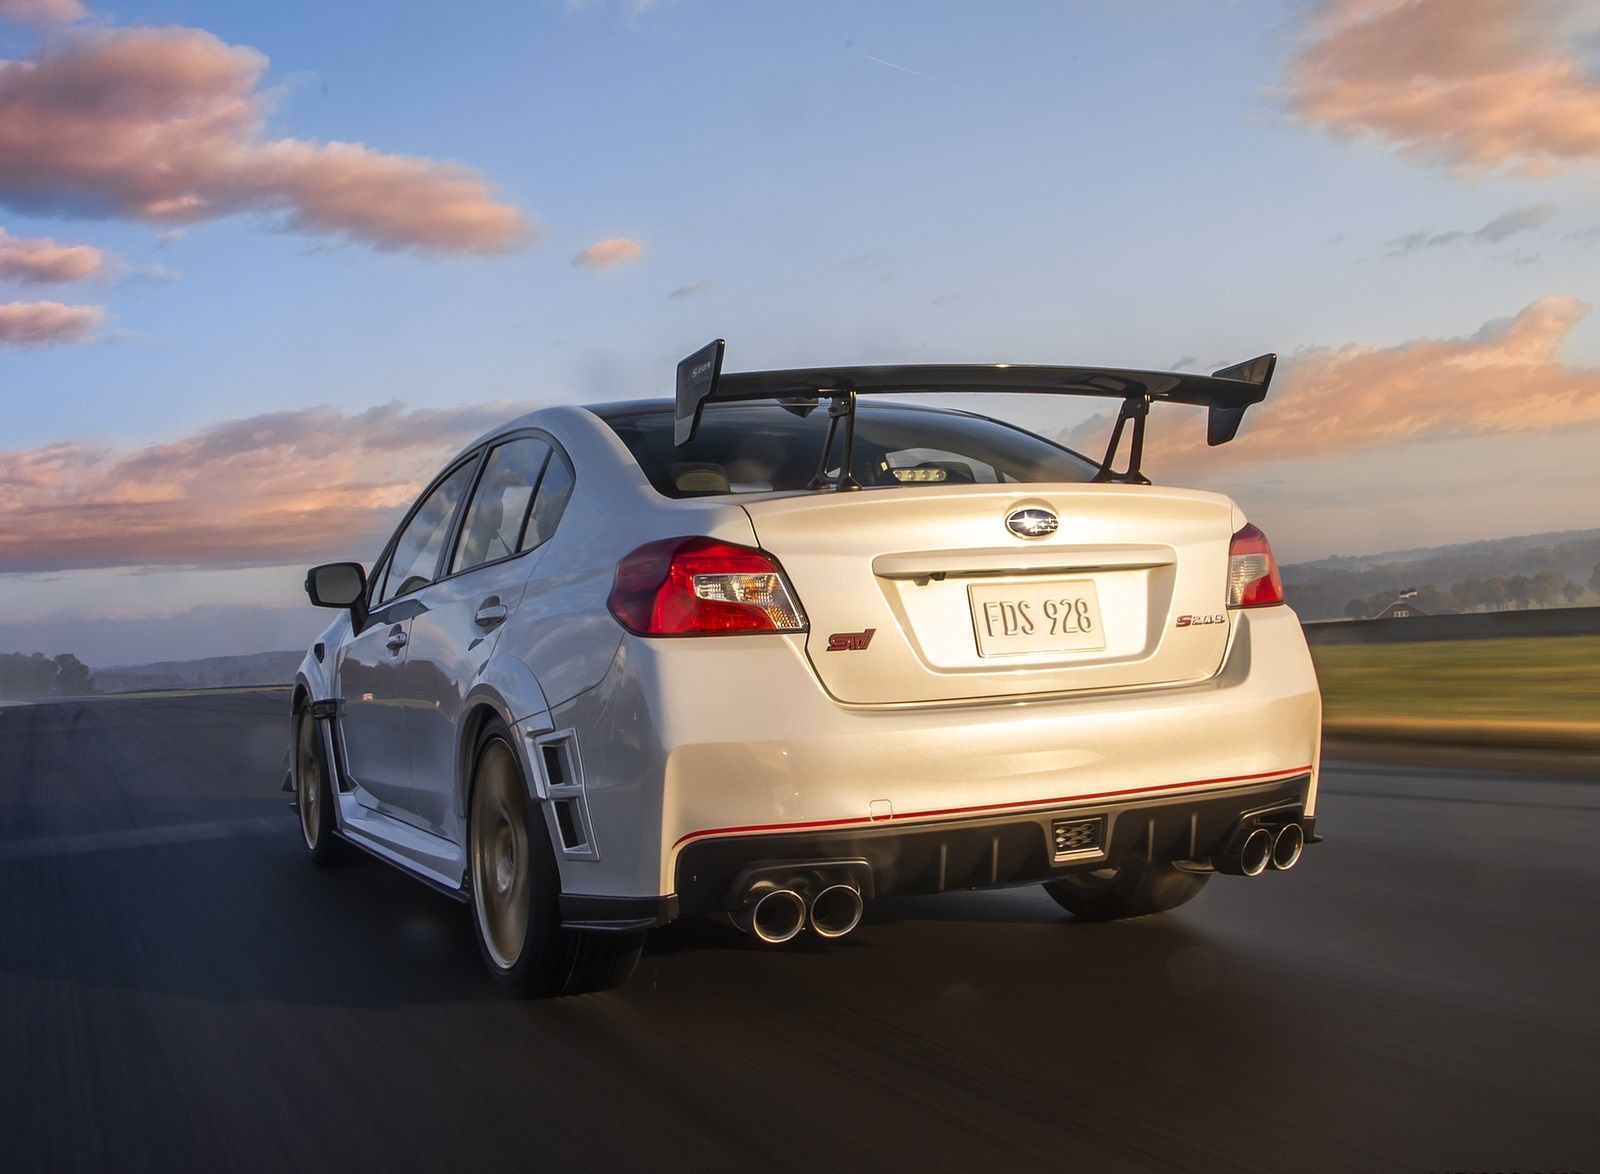 2019 Subaru WRX STI S209 Rear Wallpapers (13)